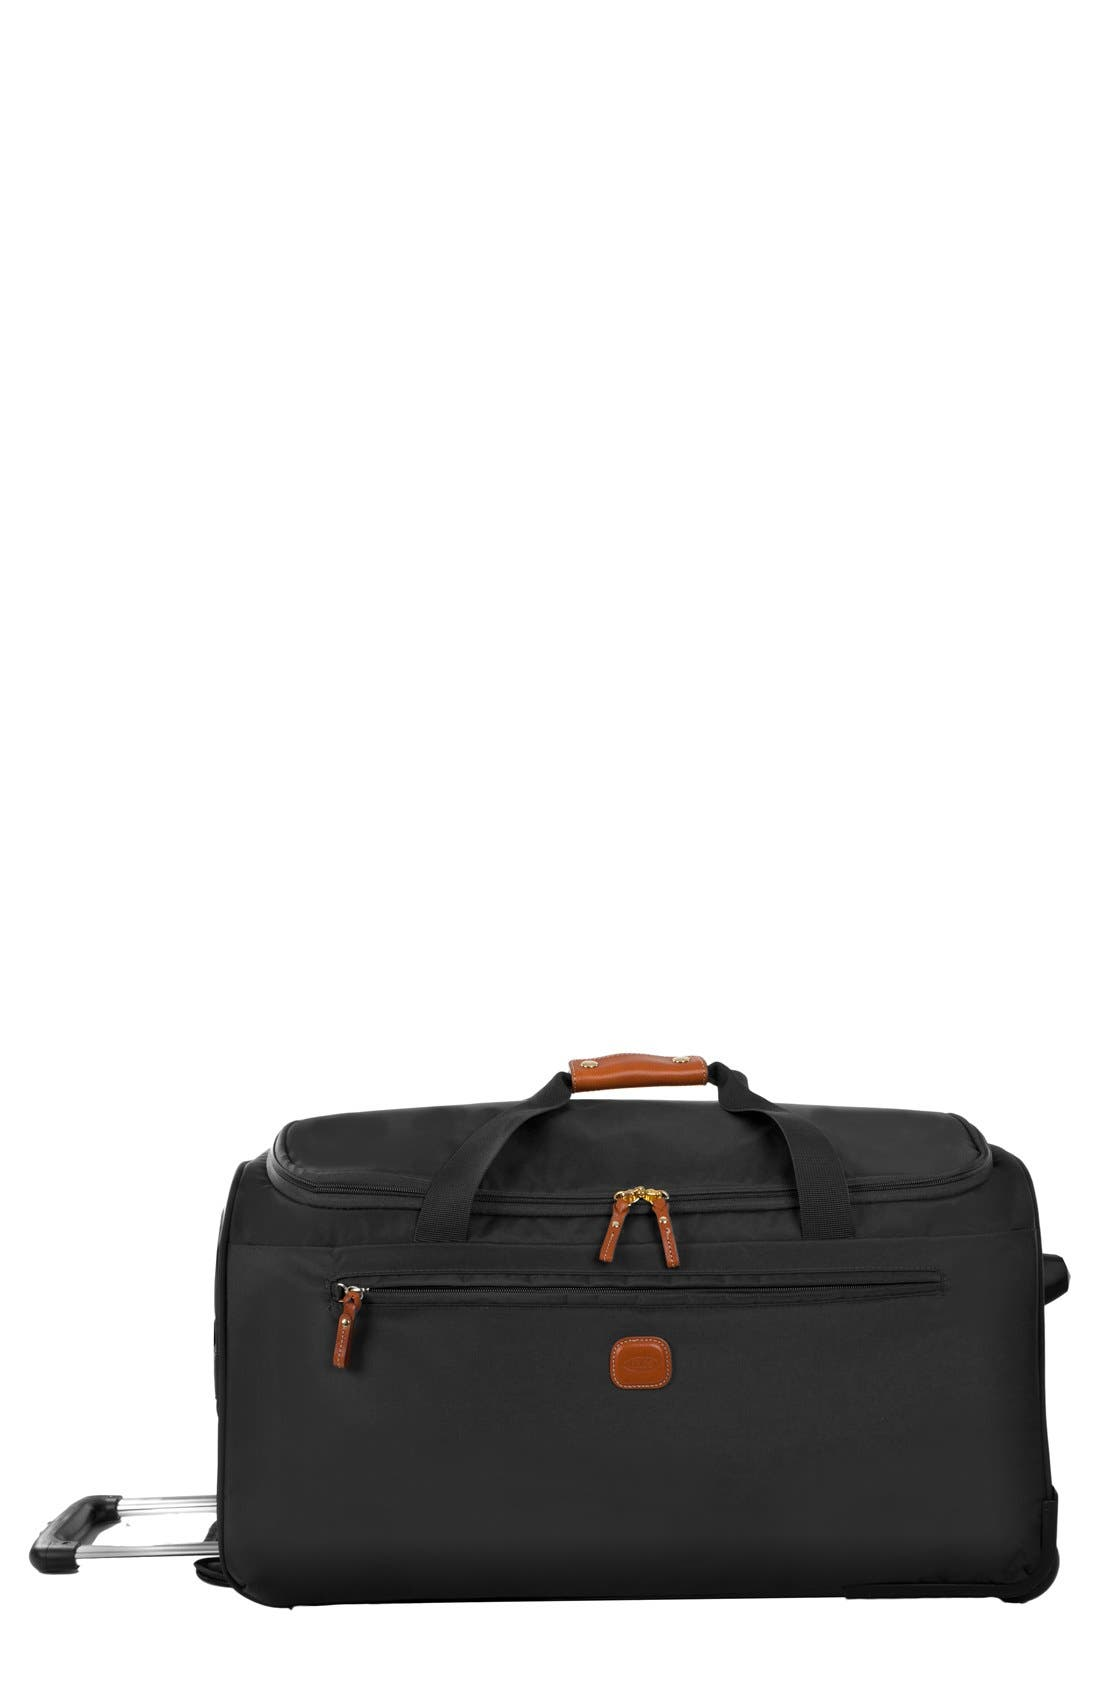 X-Bag 28-Inch Rolling Duffel Bag,                         Main,                         color, BLACK